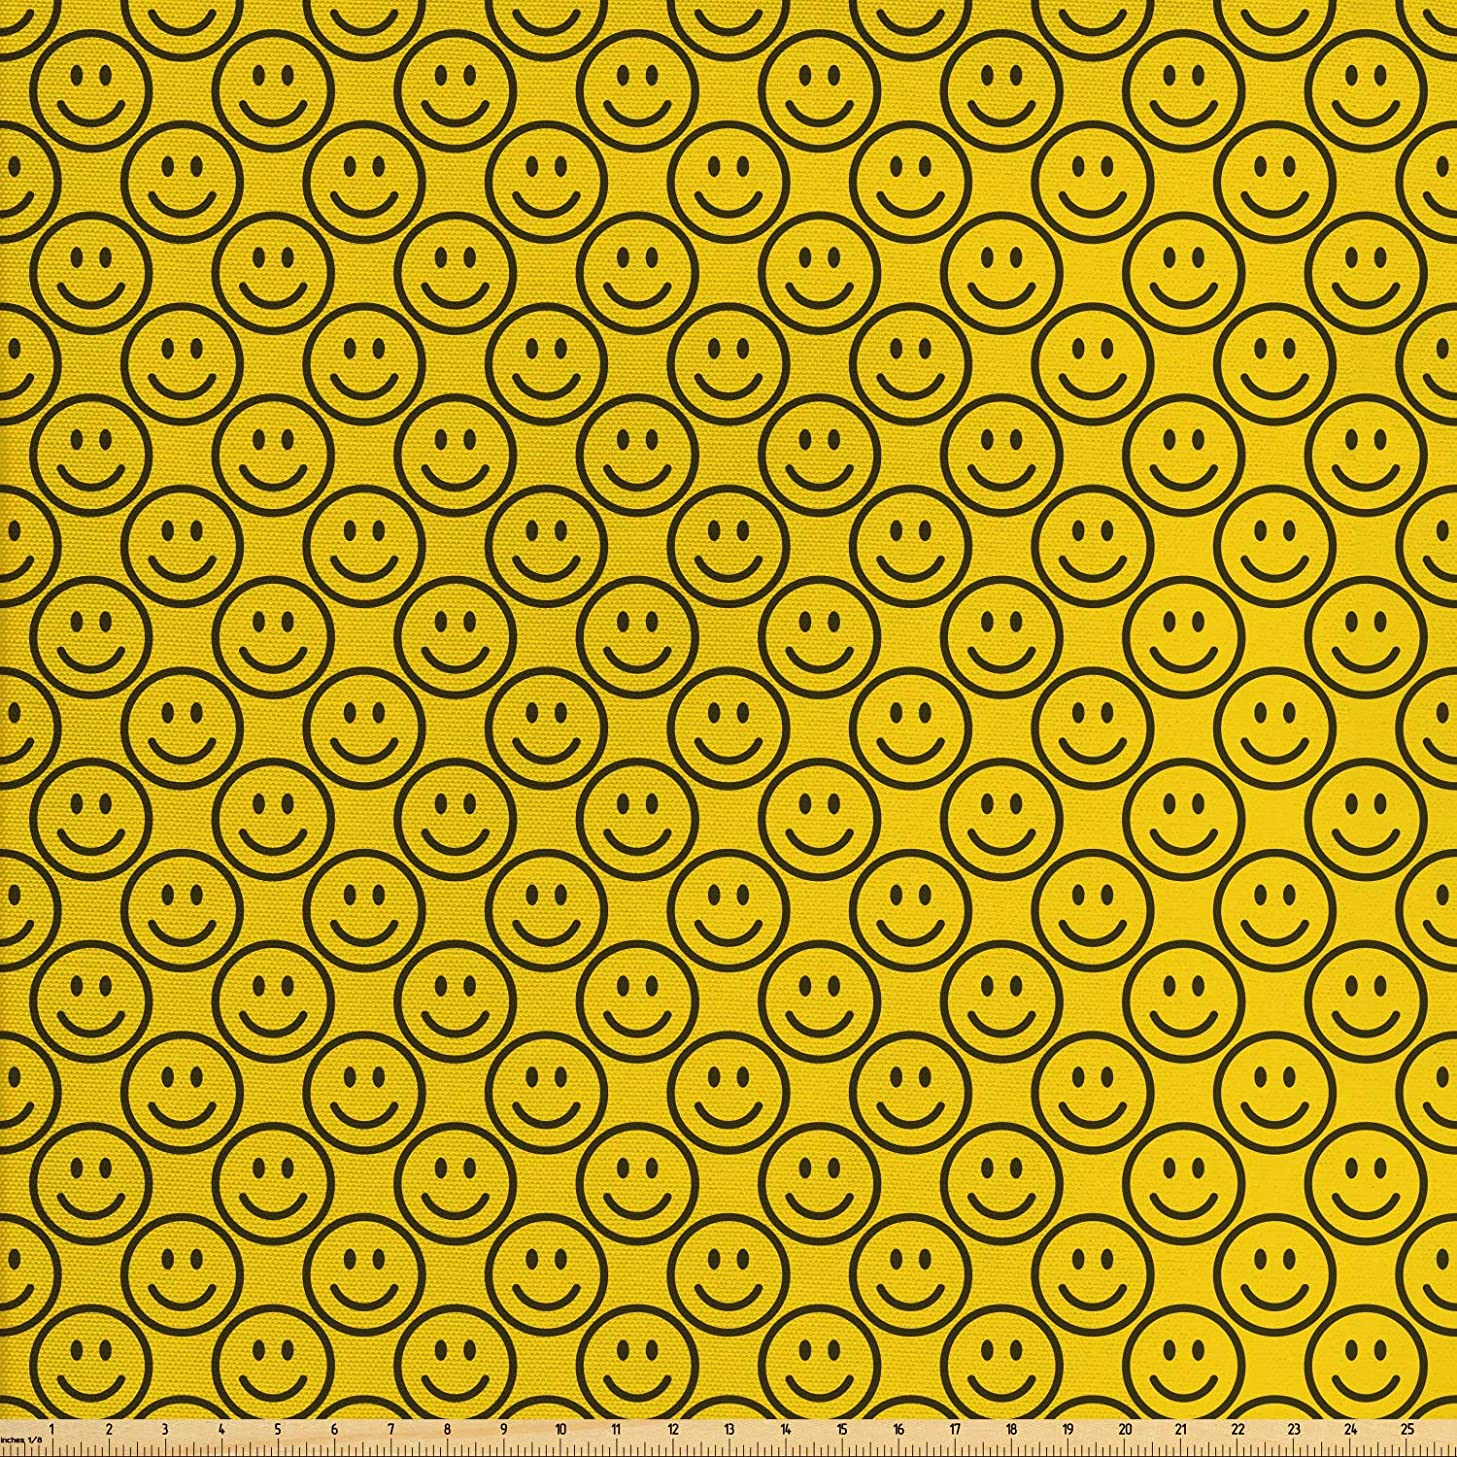 Ambesonne Emoji Fabric by The Yard, Flat Smiley Faces Expressing Happiness in Diagonal Order Joyful Childhood, Decorative Fabric for Upholstery and Home Accents, 1 Yard, Charcoal Grey Yellow